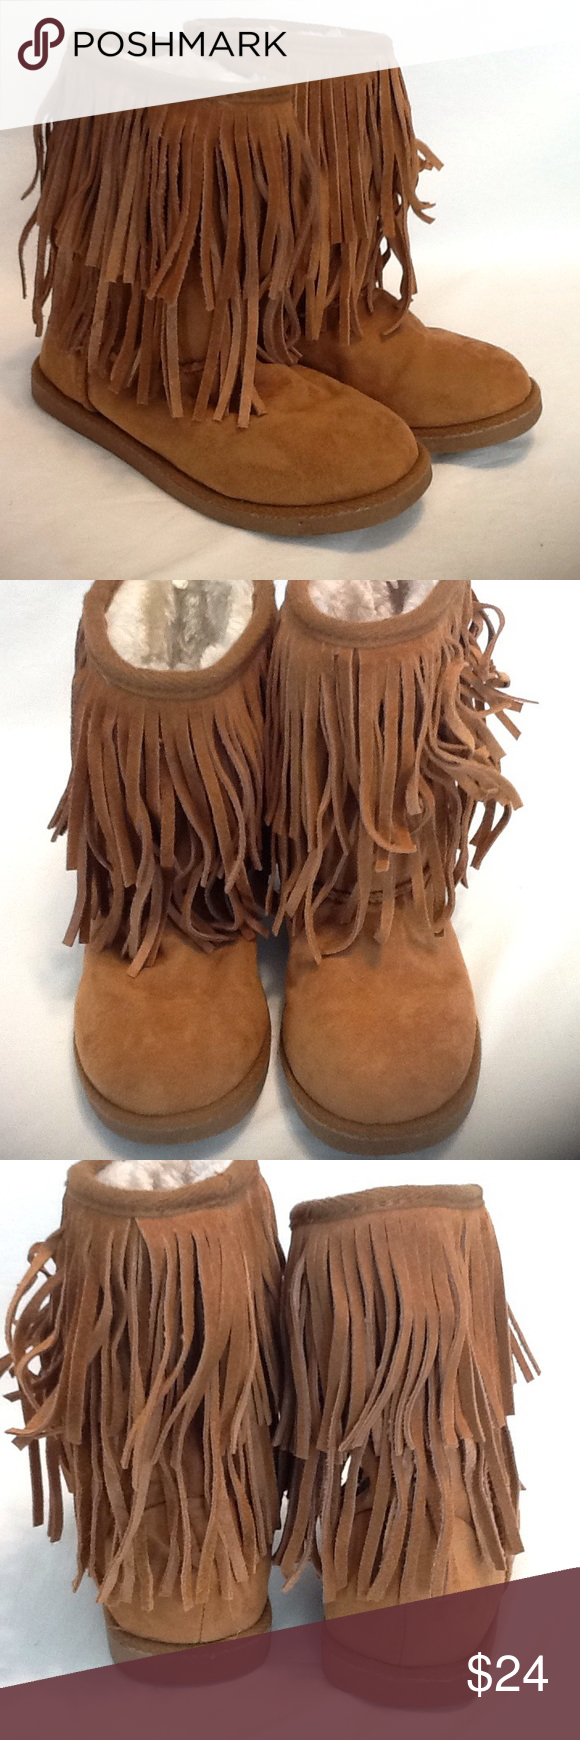 37ae4592d Justice Brown Fringe Girls Boots used size 3 These boots are in excellent  condition, upper man made material , leather fringe , faux fur lining ,  worn very ...